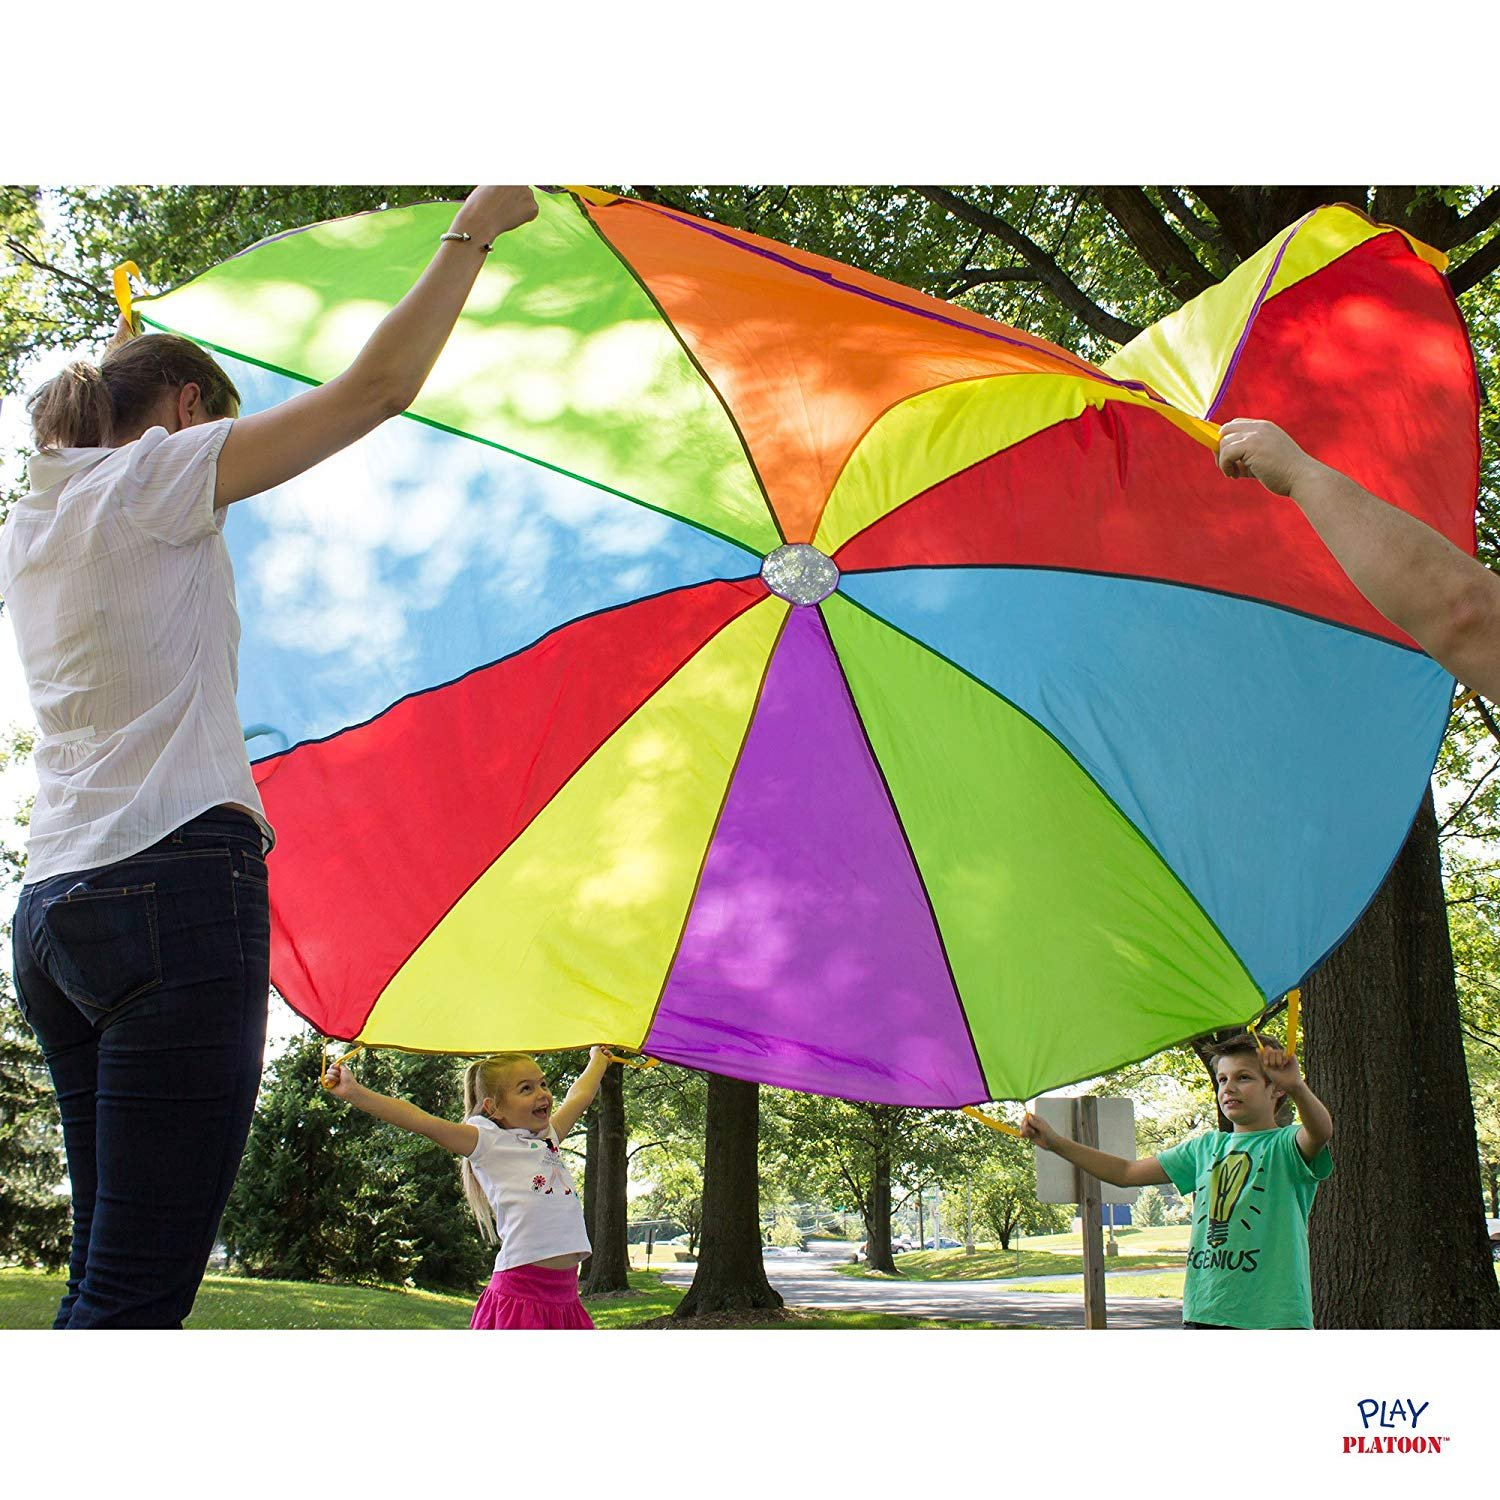 Multicolored Parachute for Kids Play Platoon 10 Foot Play Parachute with 10 Handles